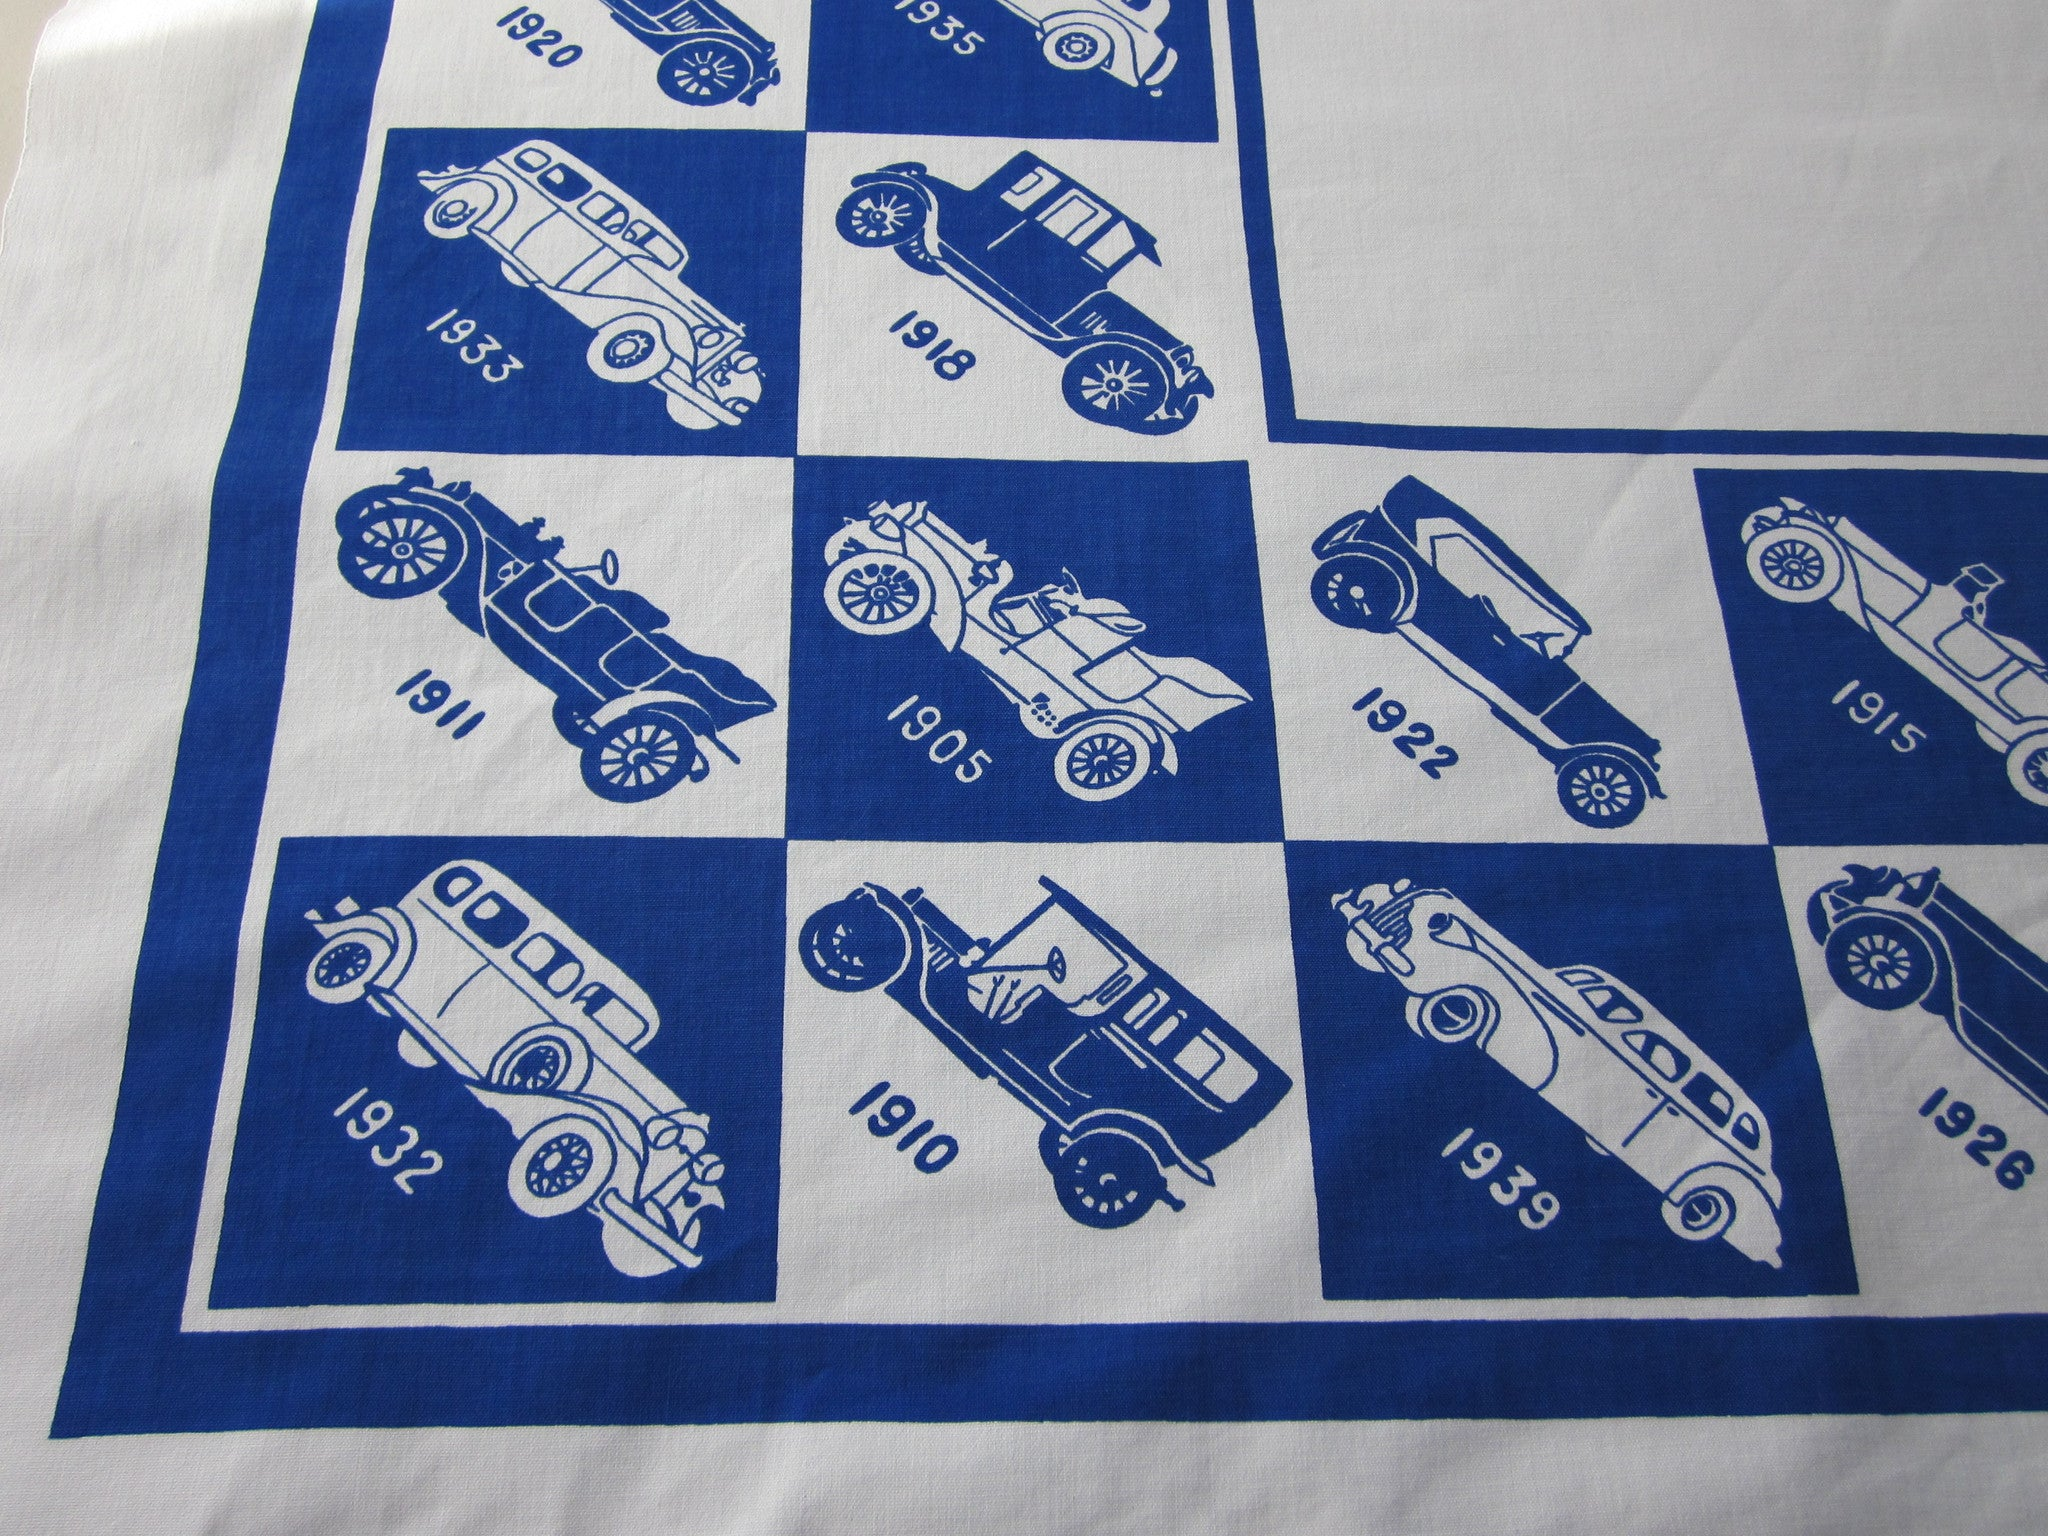 Antique Cars on Cobalt Blue Novelty Vintage Printed Tablecloth (52 X 52)